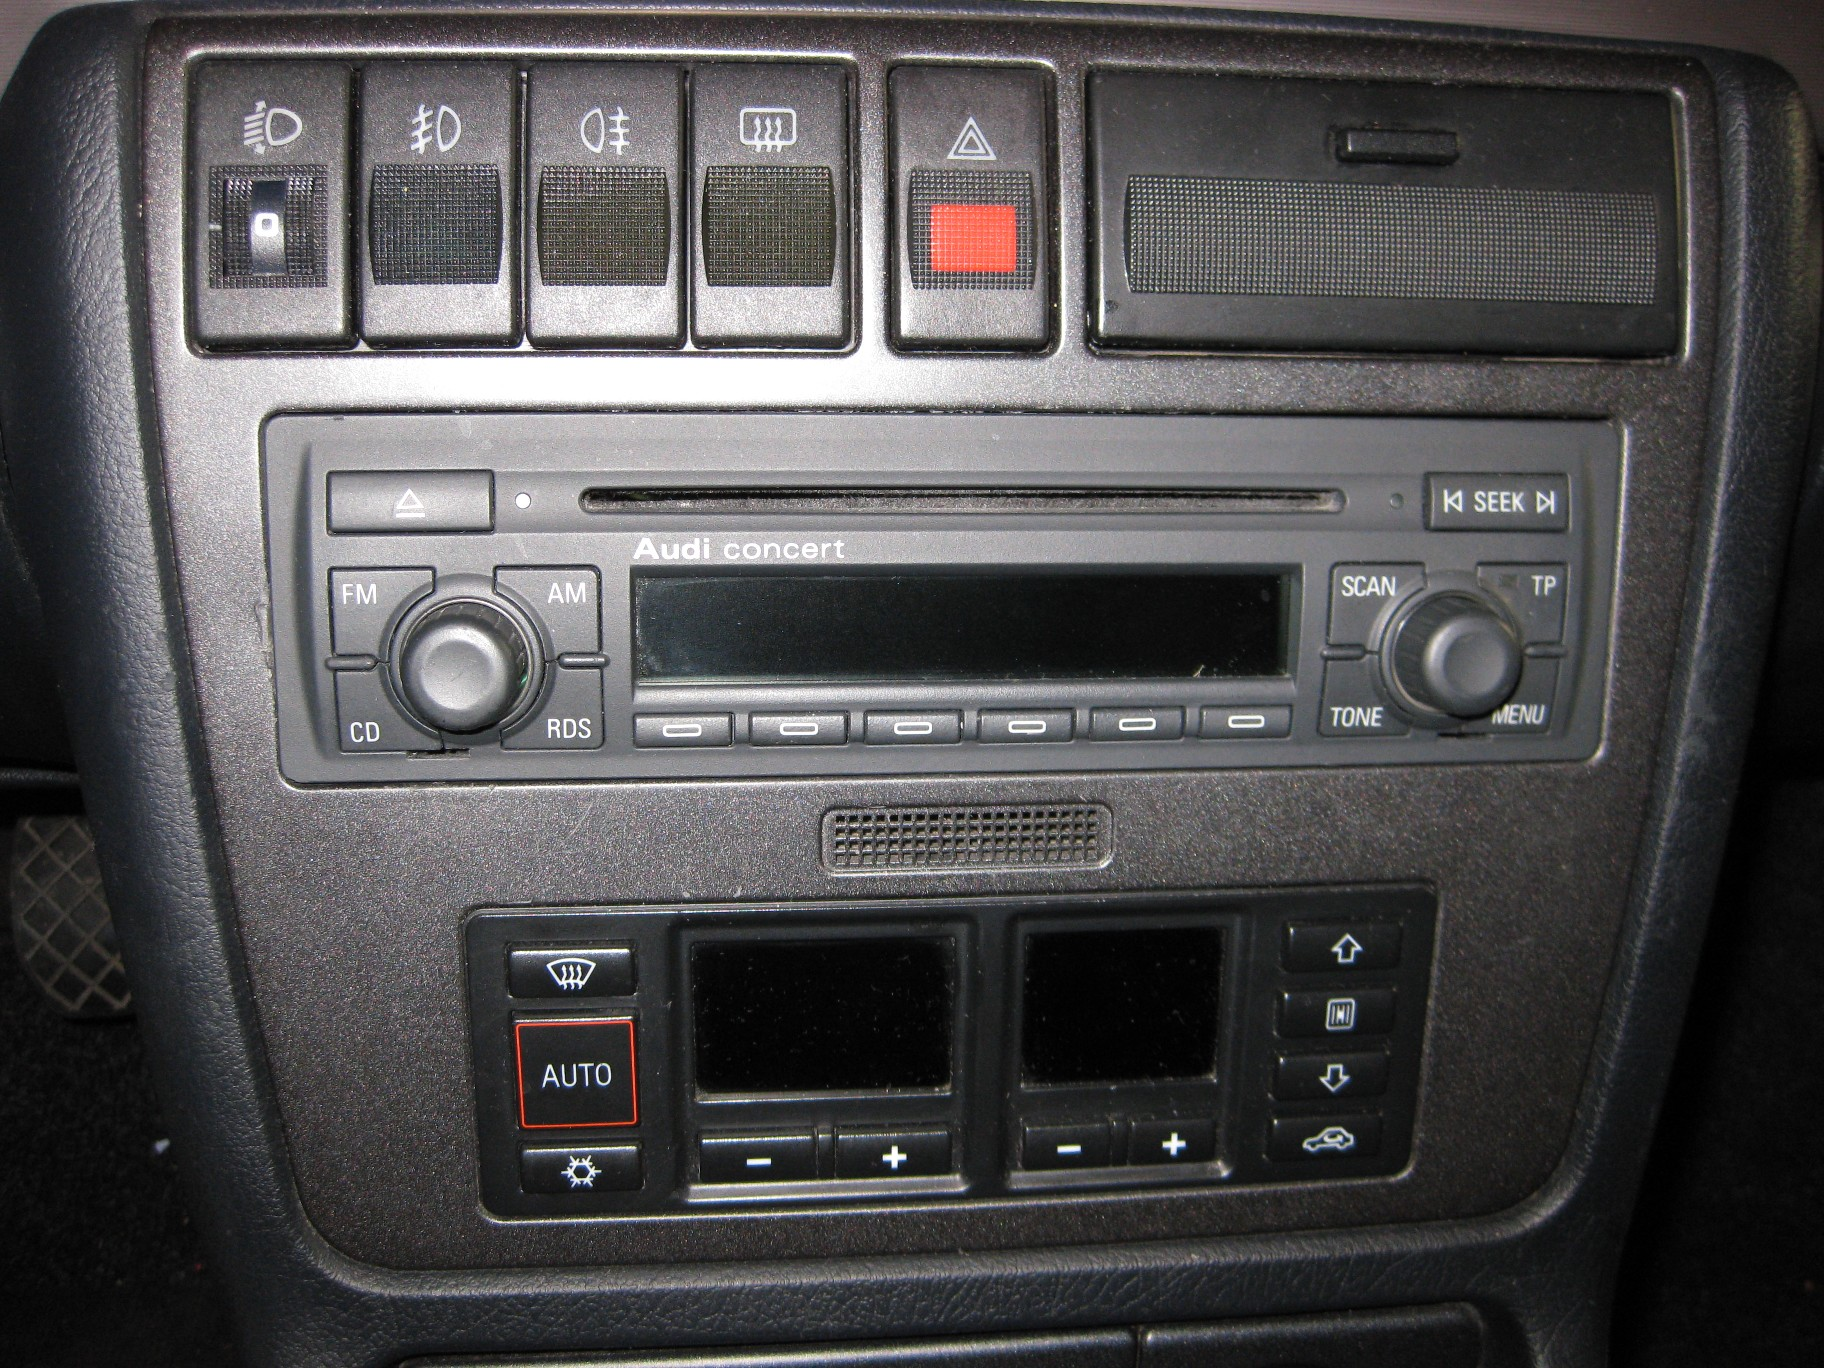 bild 004 audi a4 b5 radio umbau von kassette auf cd. Black Bedroom Furniture Sets. Home Design Ideas